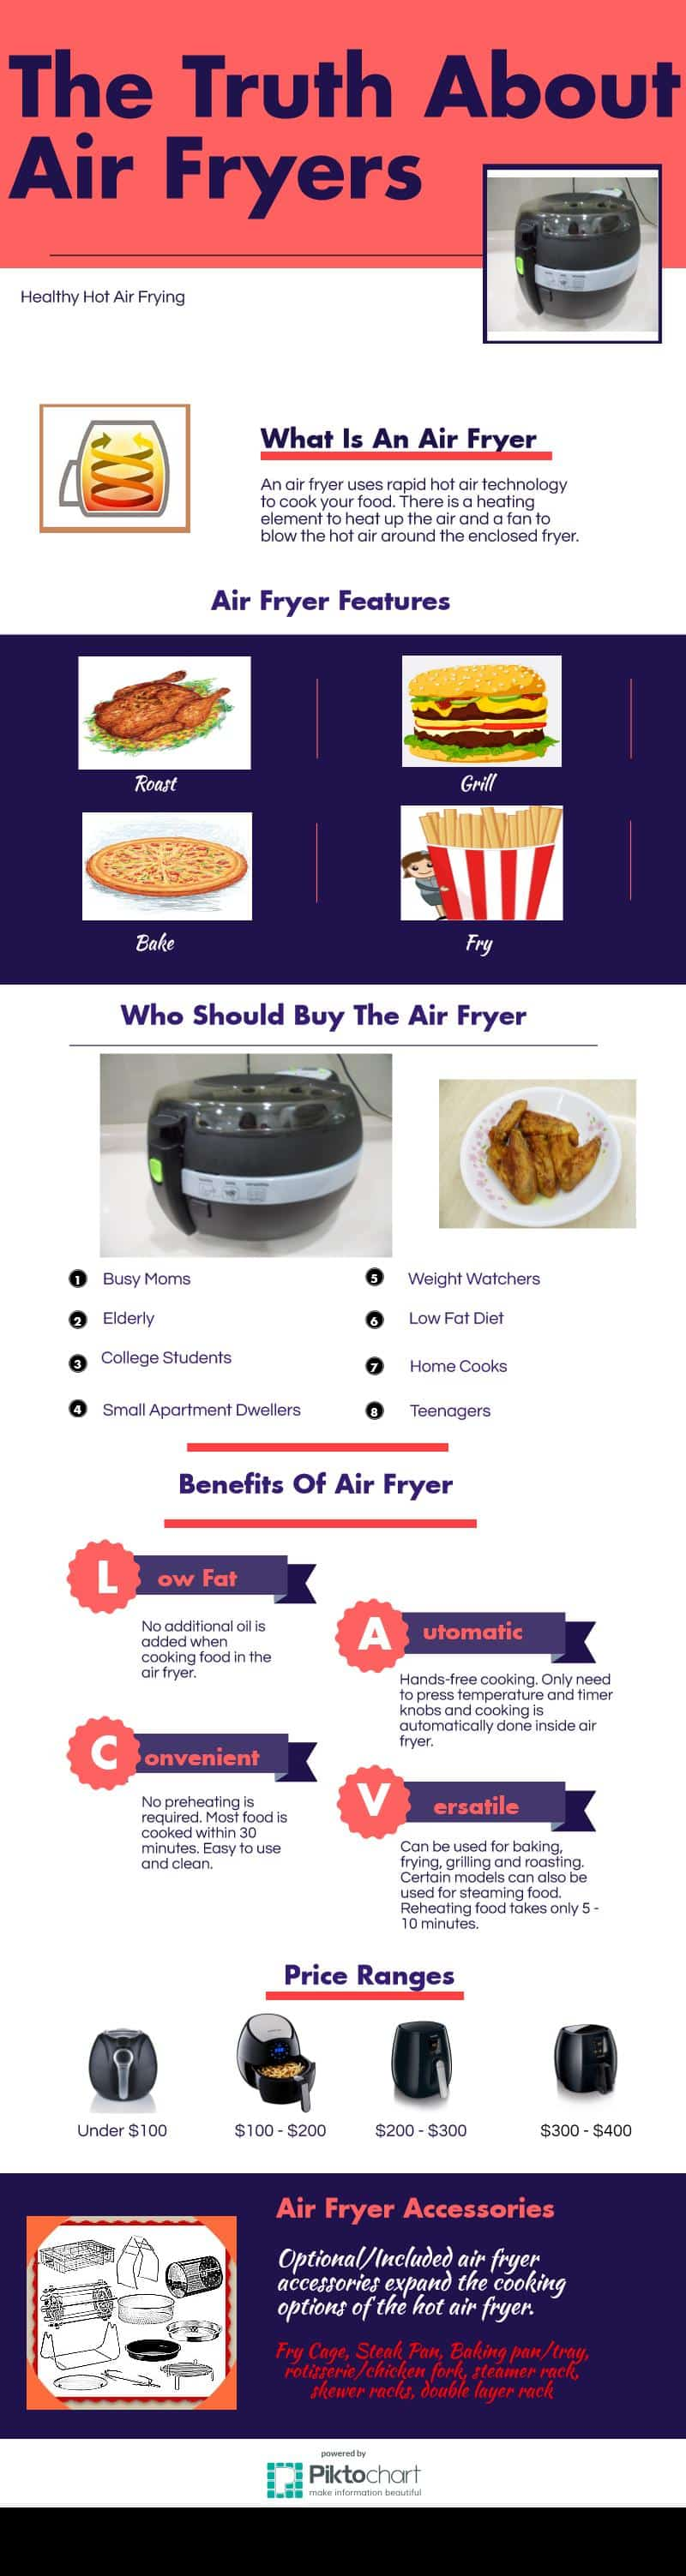 The Truth About Air Fryers